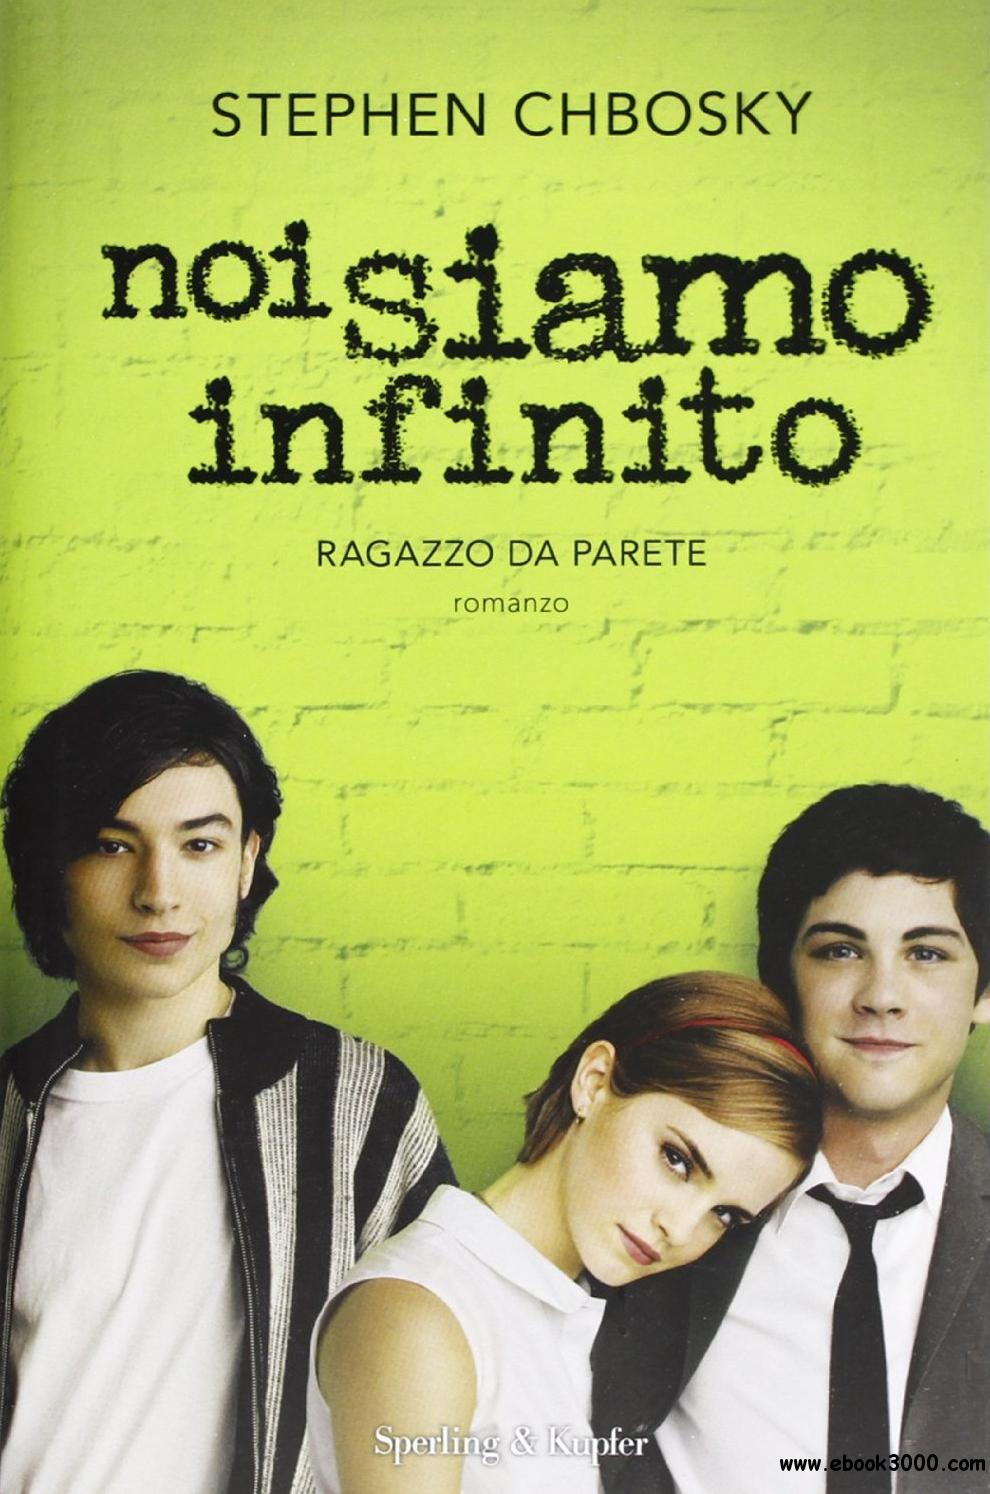 Chbosky Stephen - Noi siamo infinito free download